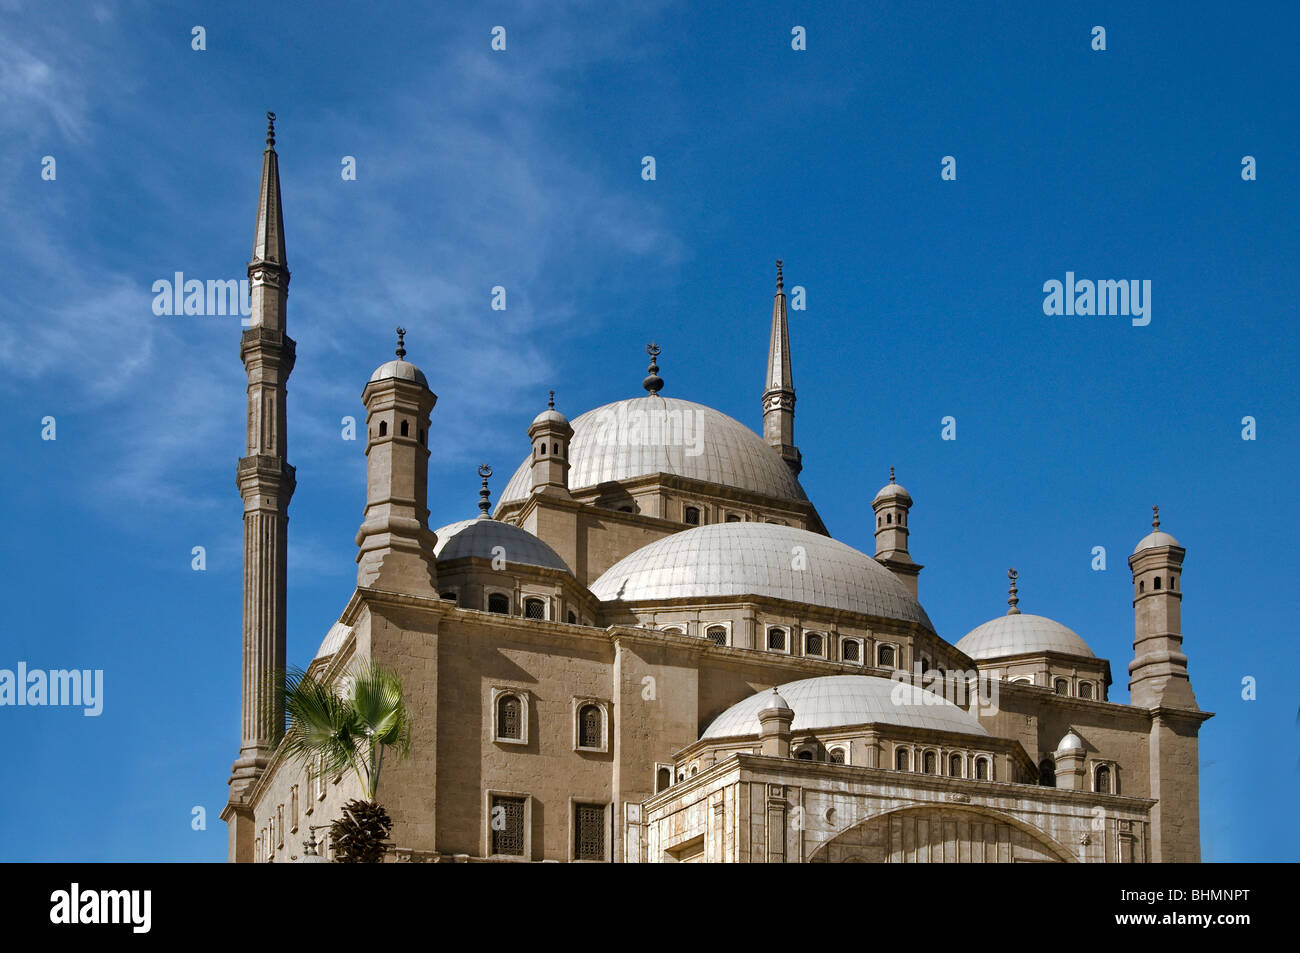 The Mosque of Muhammad Ali Pasha or Alabaster Mosque Cairo Egypt Stock Photo